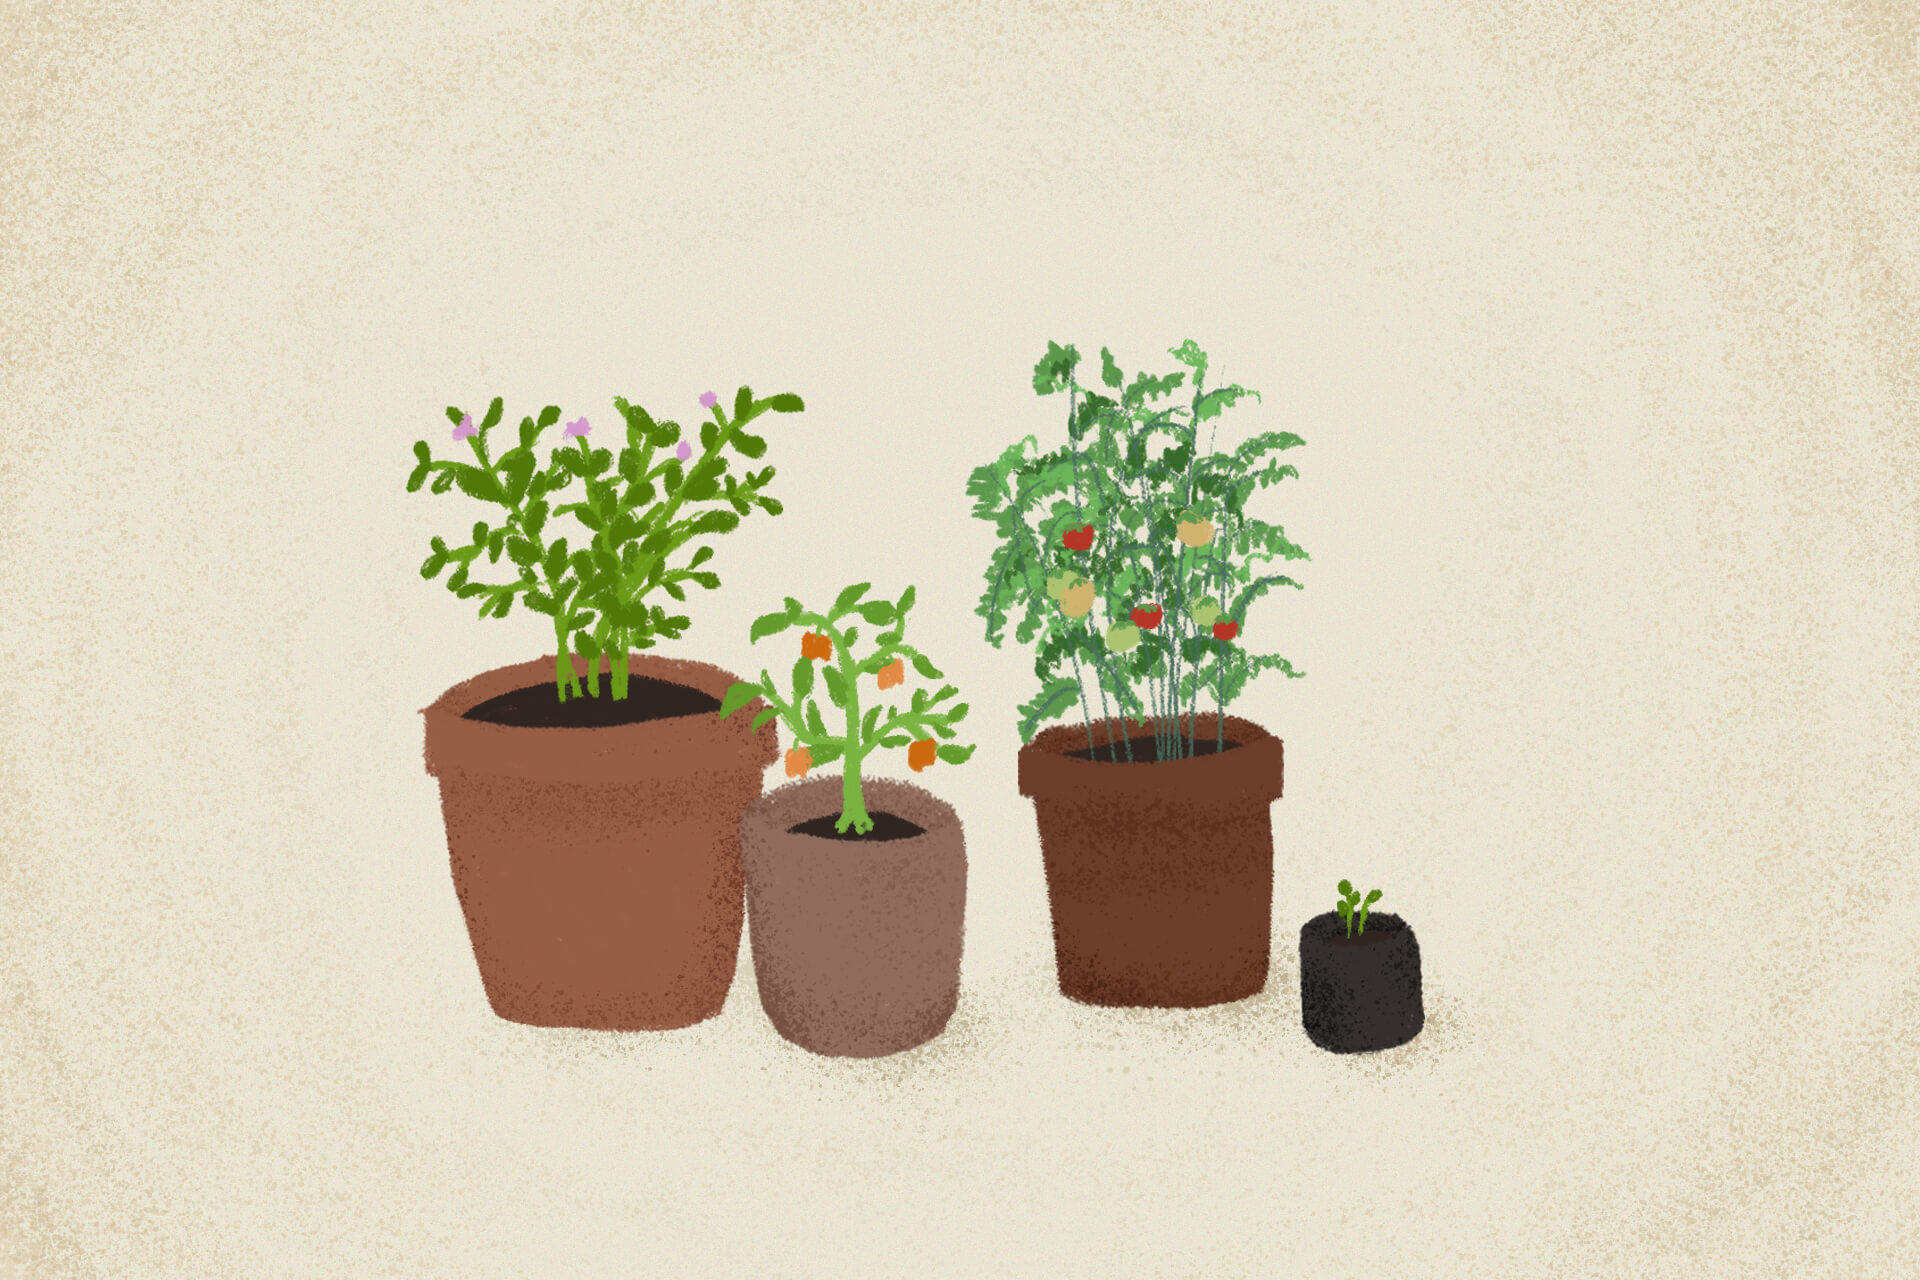 Beginner-friendly home herbs to plant, illustration by Regine Salumbre